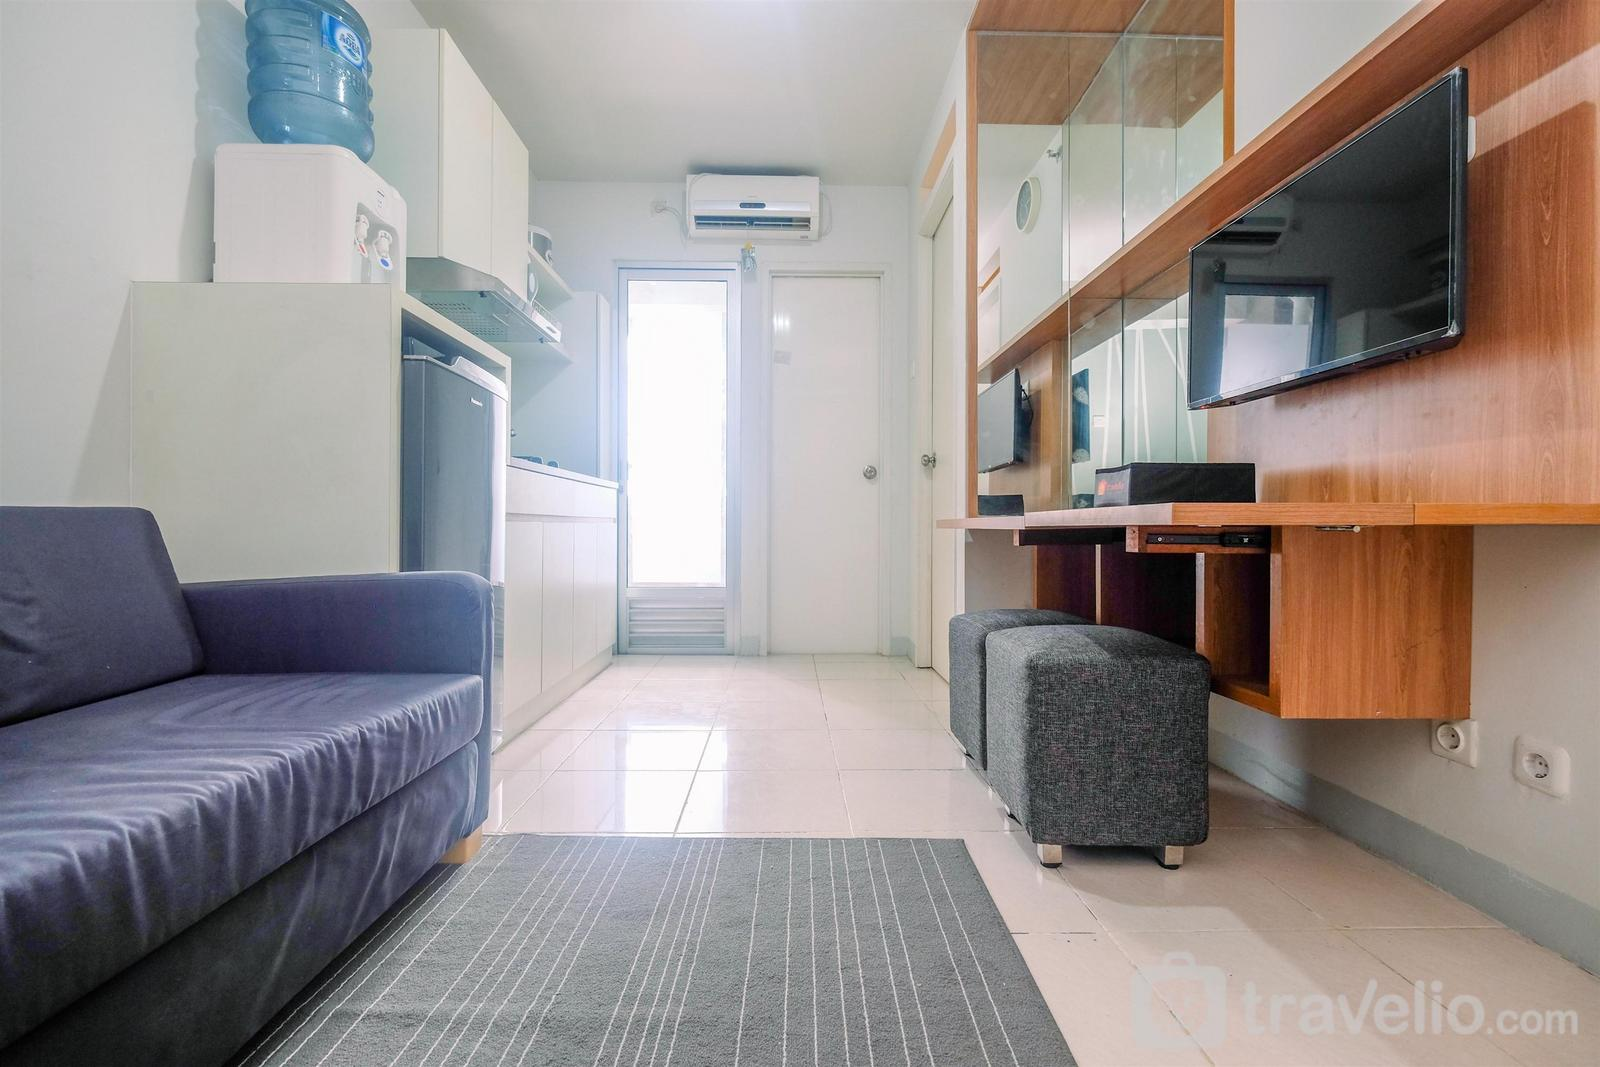 Kalibata City Apartment - Cozy and Simple 2BR at Kalibata City Residence near Kalibata Station By Travelio